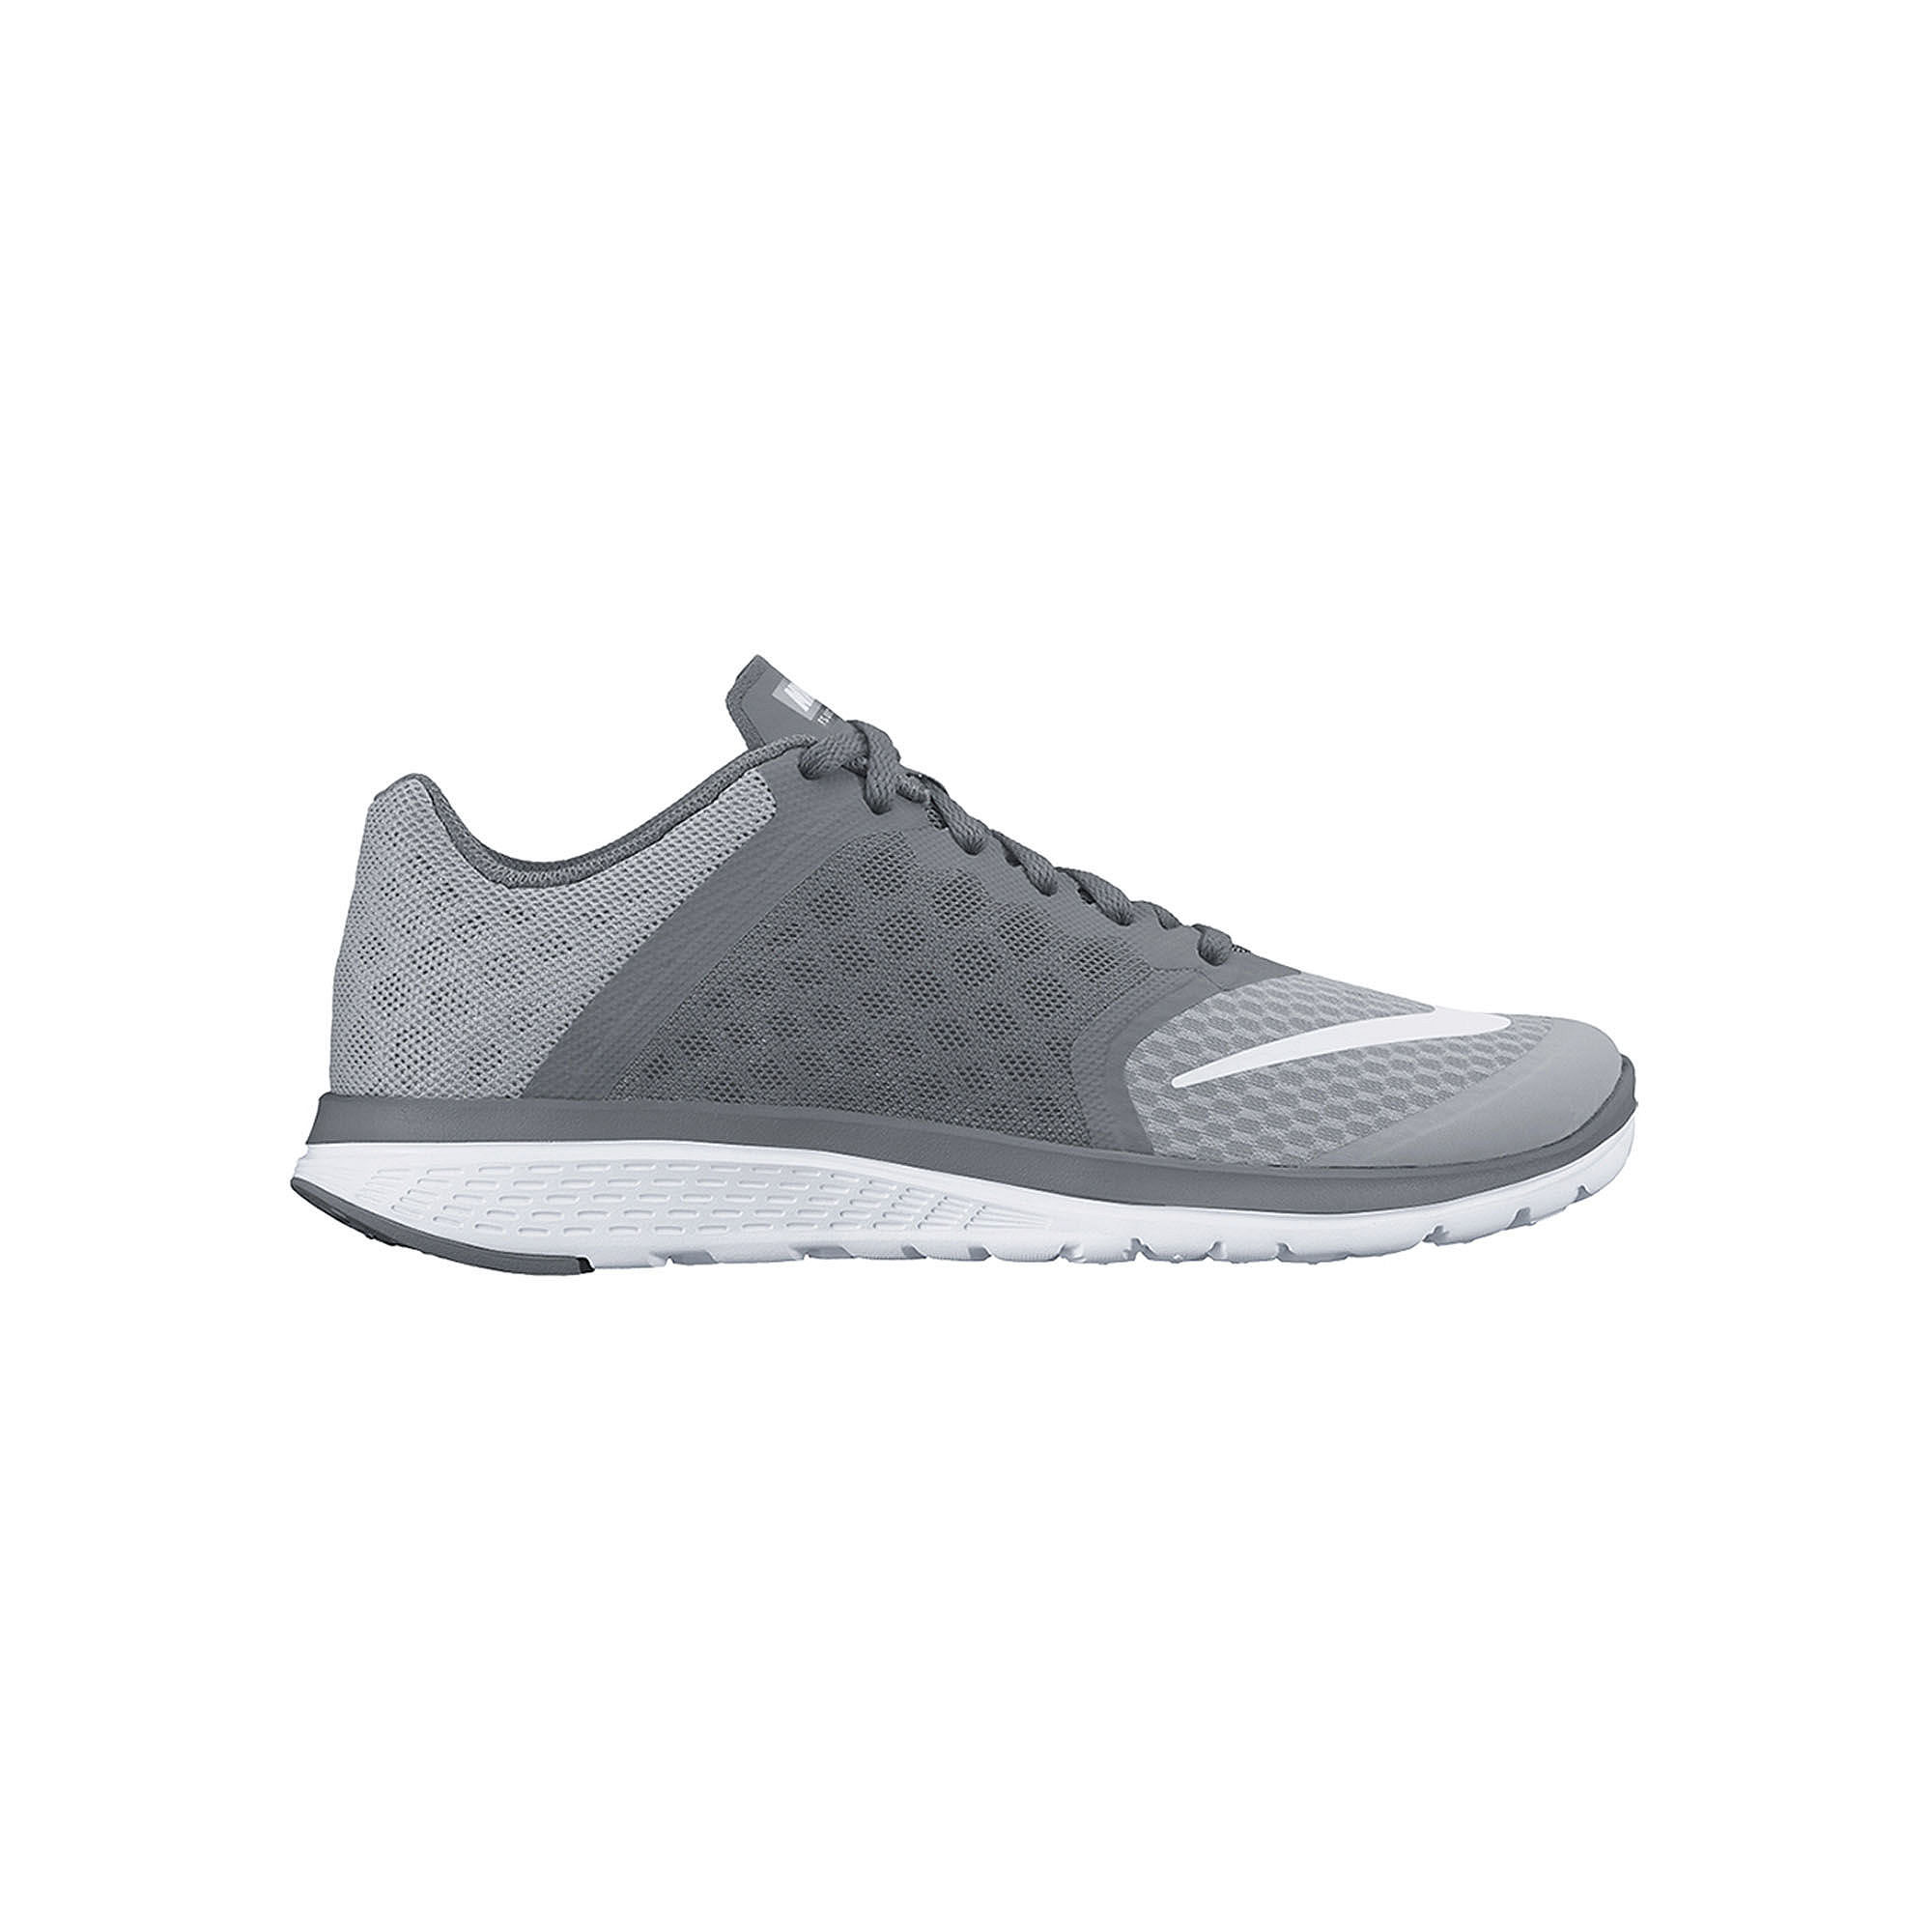 951d11590d8 ... 807144-008 Wolf Grey Mens Us UPC 640135420436 product image for Nike FS  Lite Run 3 Mens Running Shoes